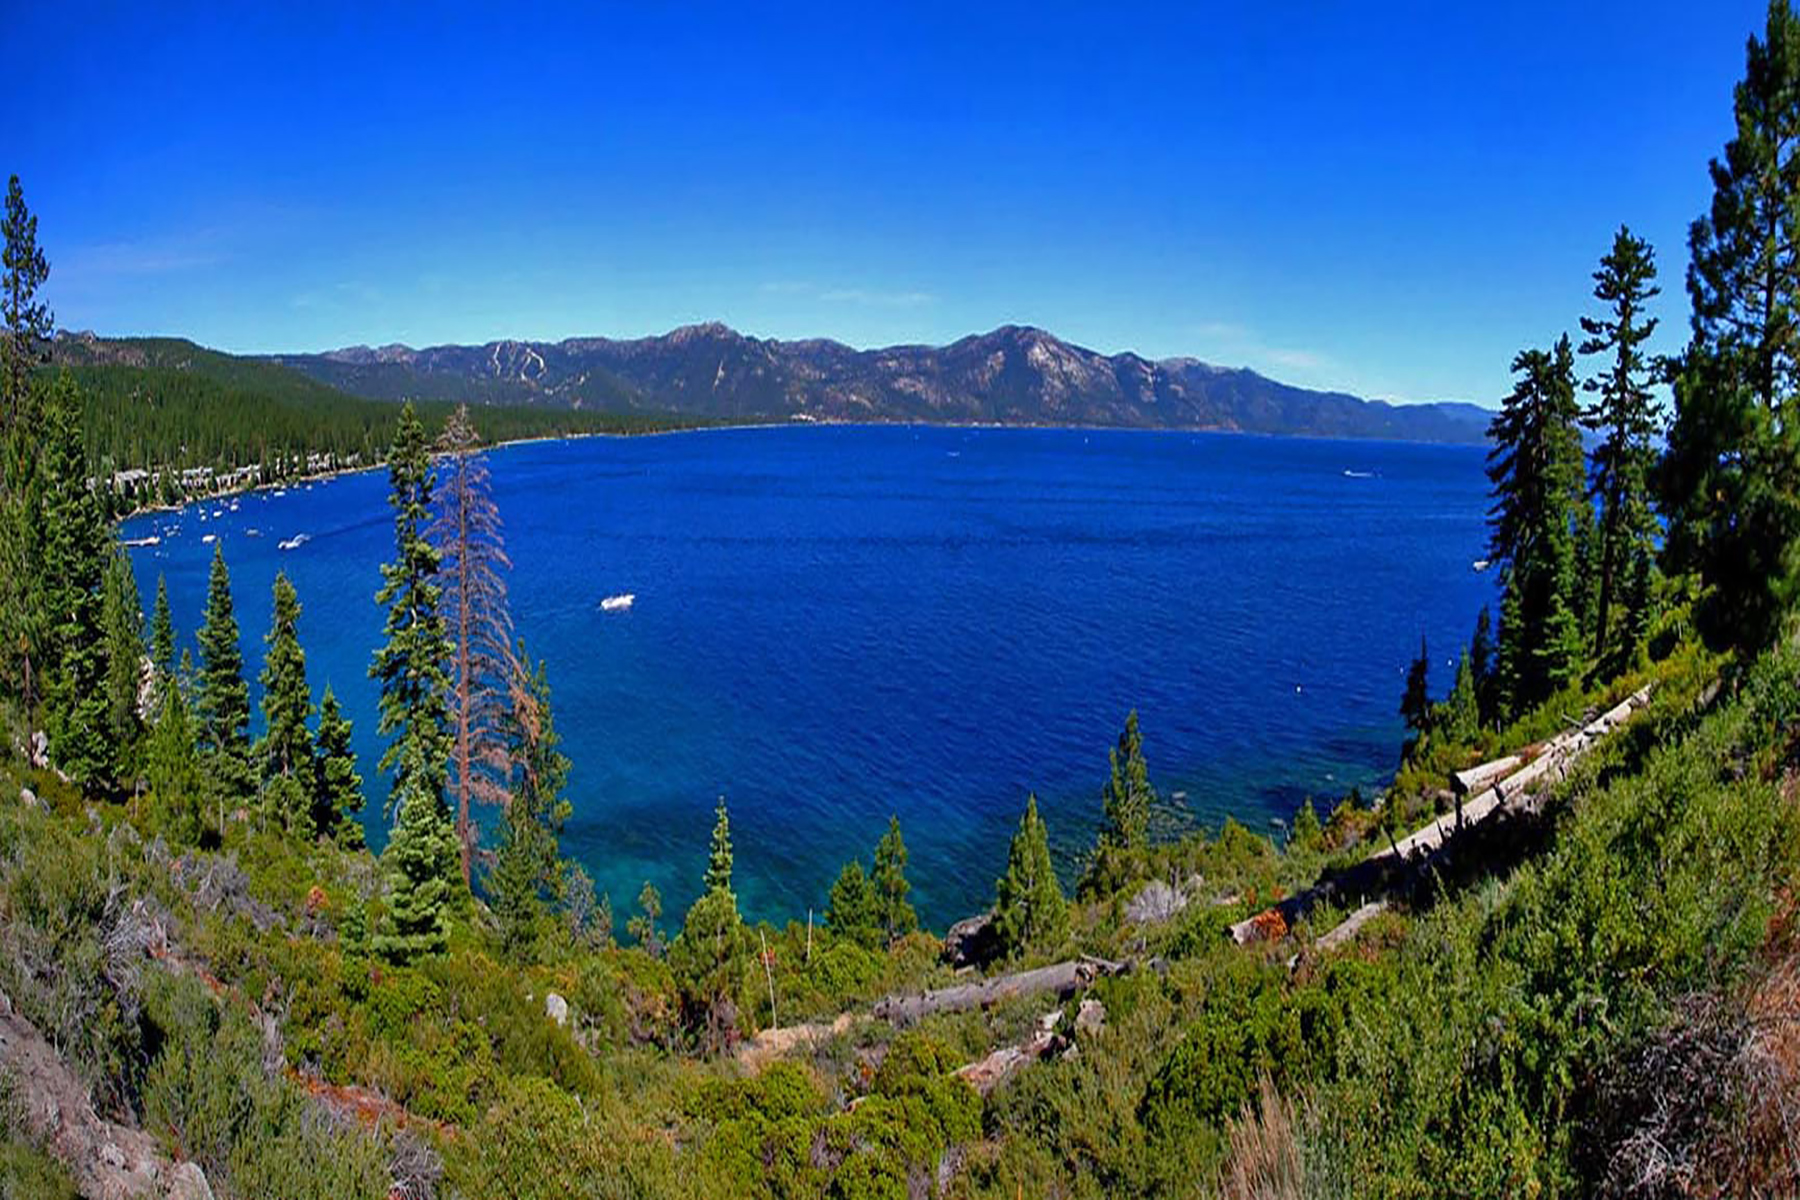 Land for Sale at 447 Lakeshore Blvd. 447 Lakeshore Boulevard Incline Village, Nevada 89451 United States